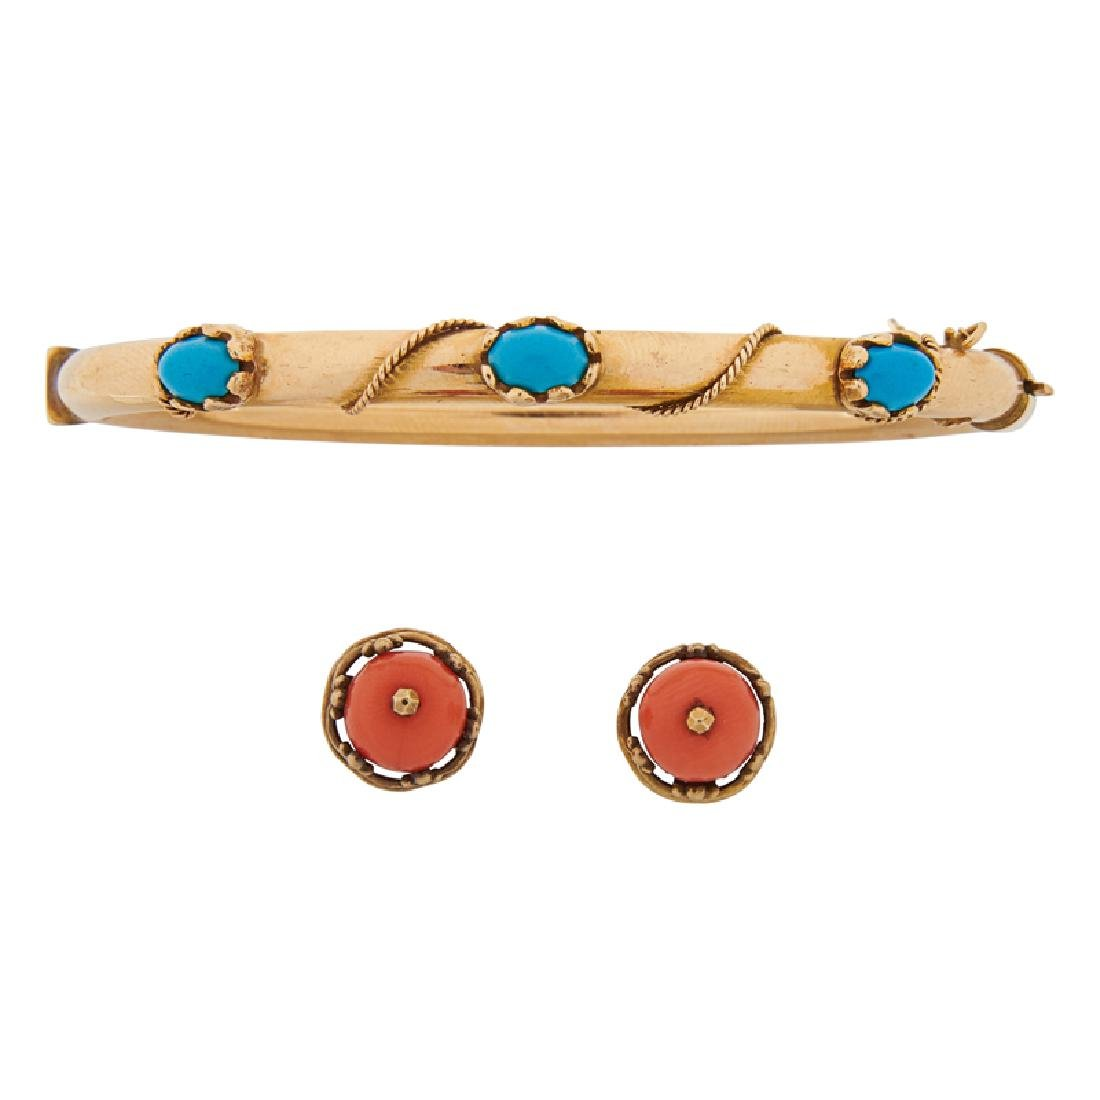 TURQUOISE OR CORAL & GOLD BRACELET OR EARRINGS